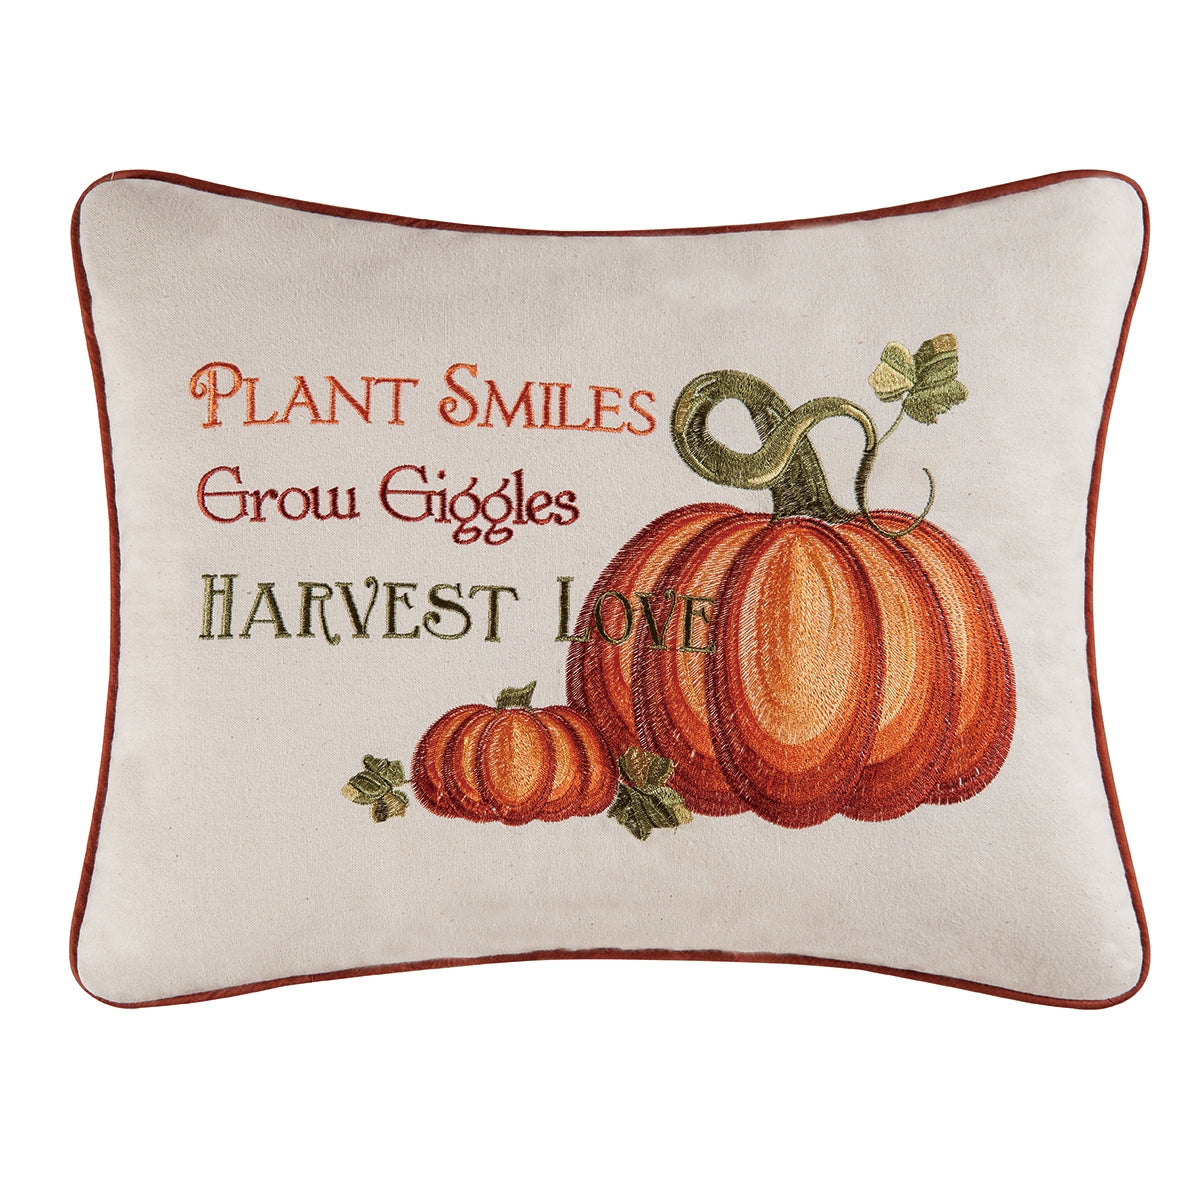 all table coral tusk thanksgiving linens gifts pillows products holiday keeper and decorations pillow